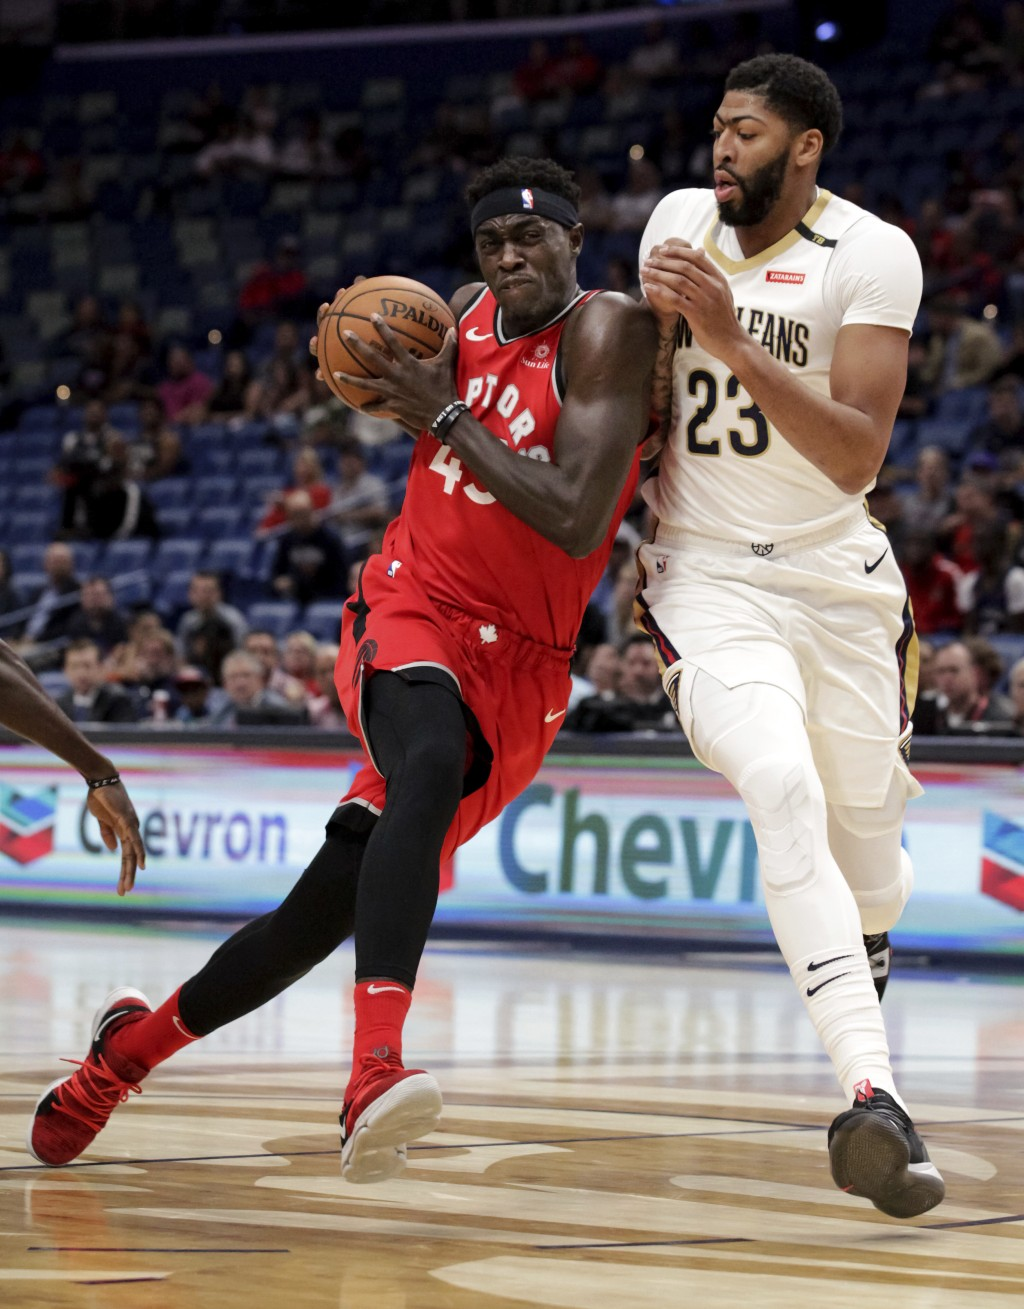 Toronto Raptors forward Pascal Siakam (43) drives against New Orleans Pelicans forward Anthony Davis (23) during the first half of a preseason NBA bas